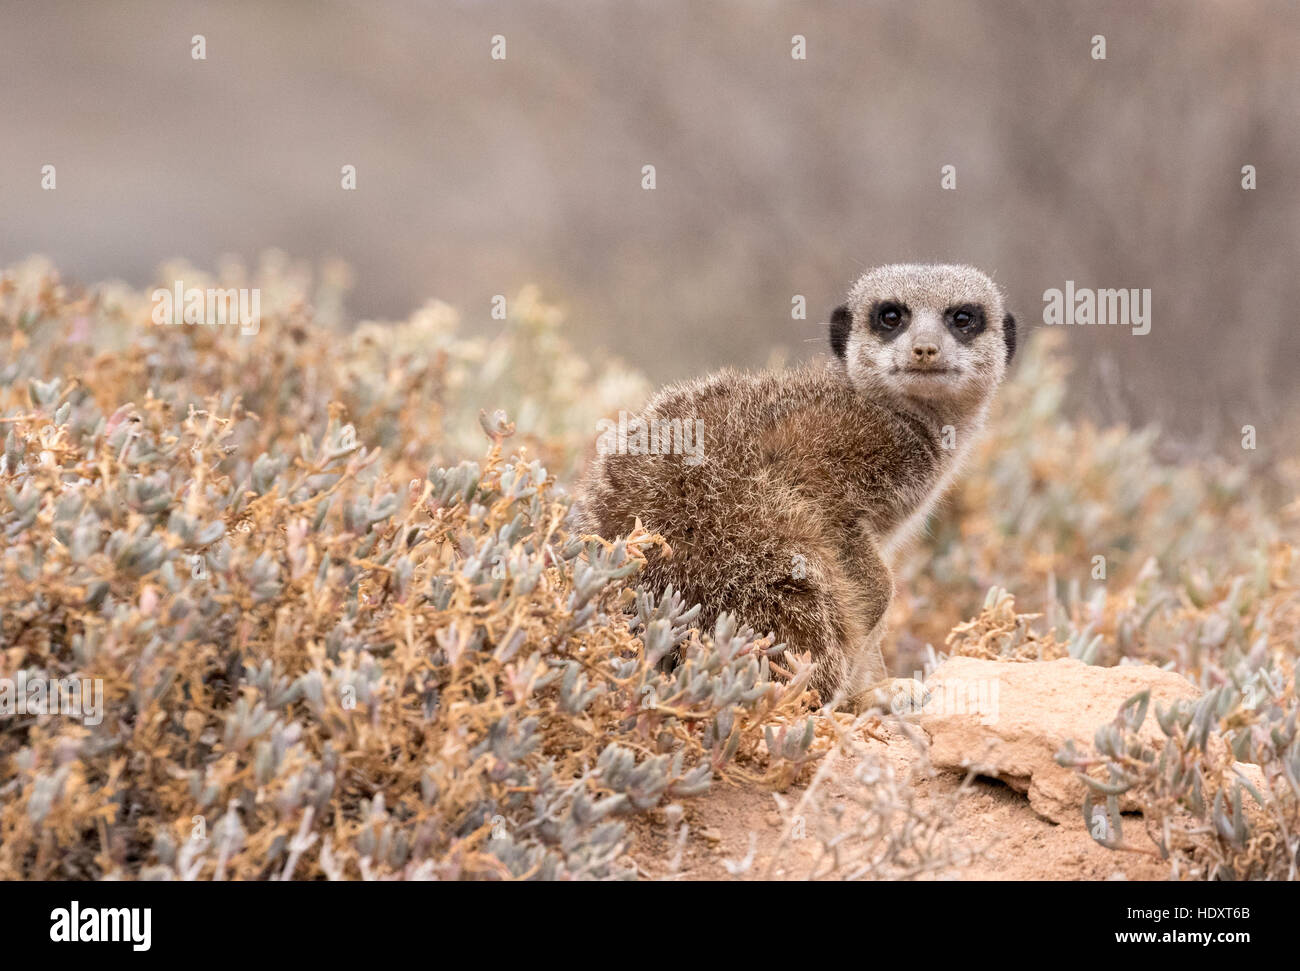 One meerkat ( Suricata suricatta ),  looking at the camera, Oudsthoorn, the Karoo, South Africa - Stock Image